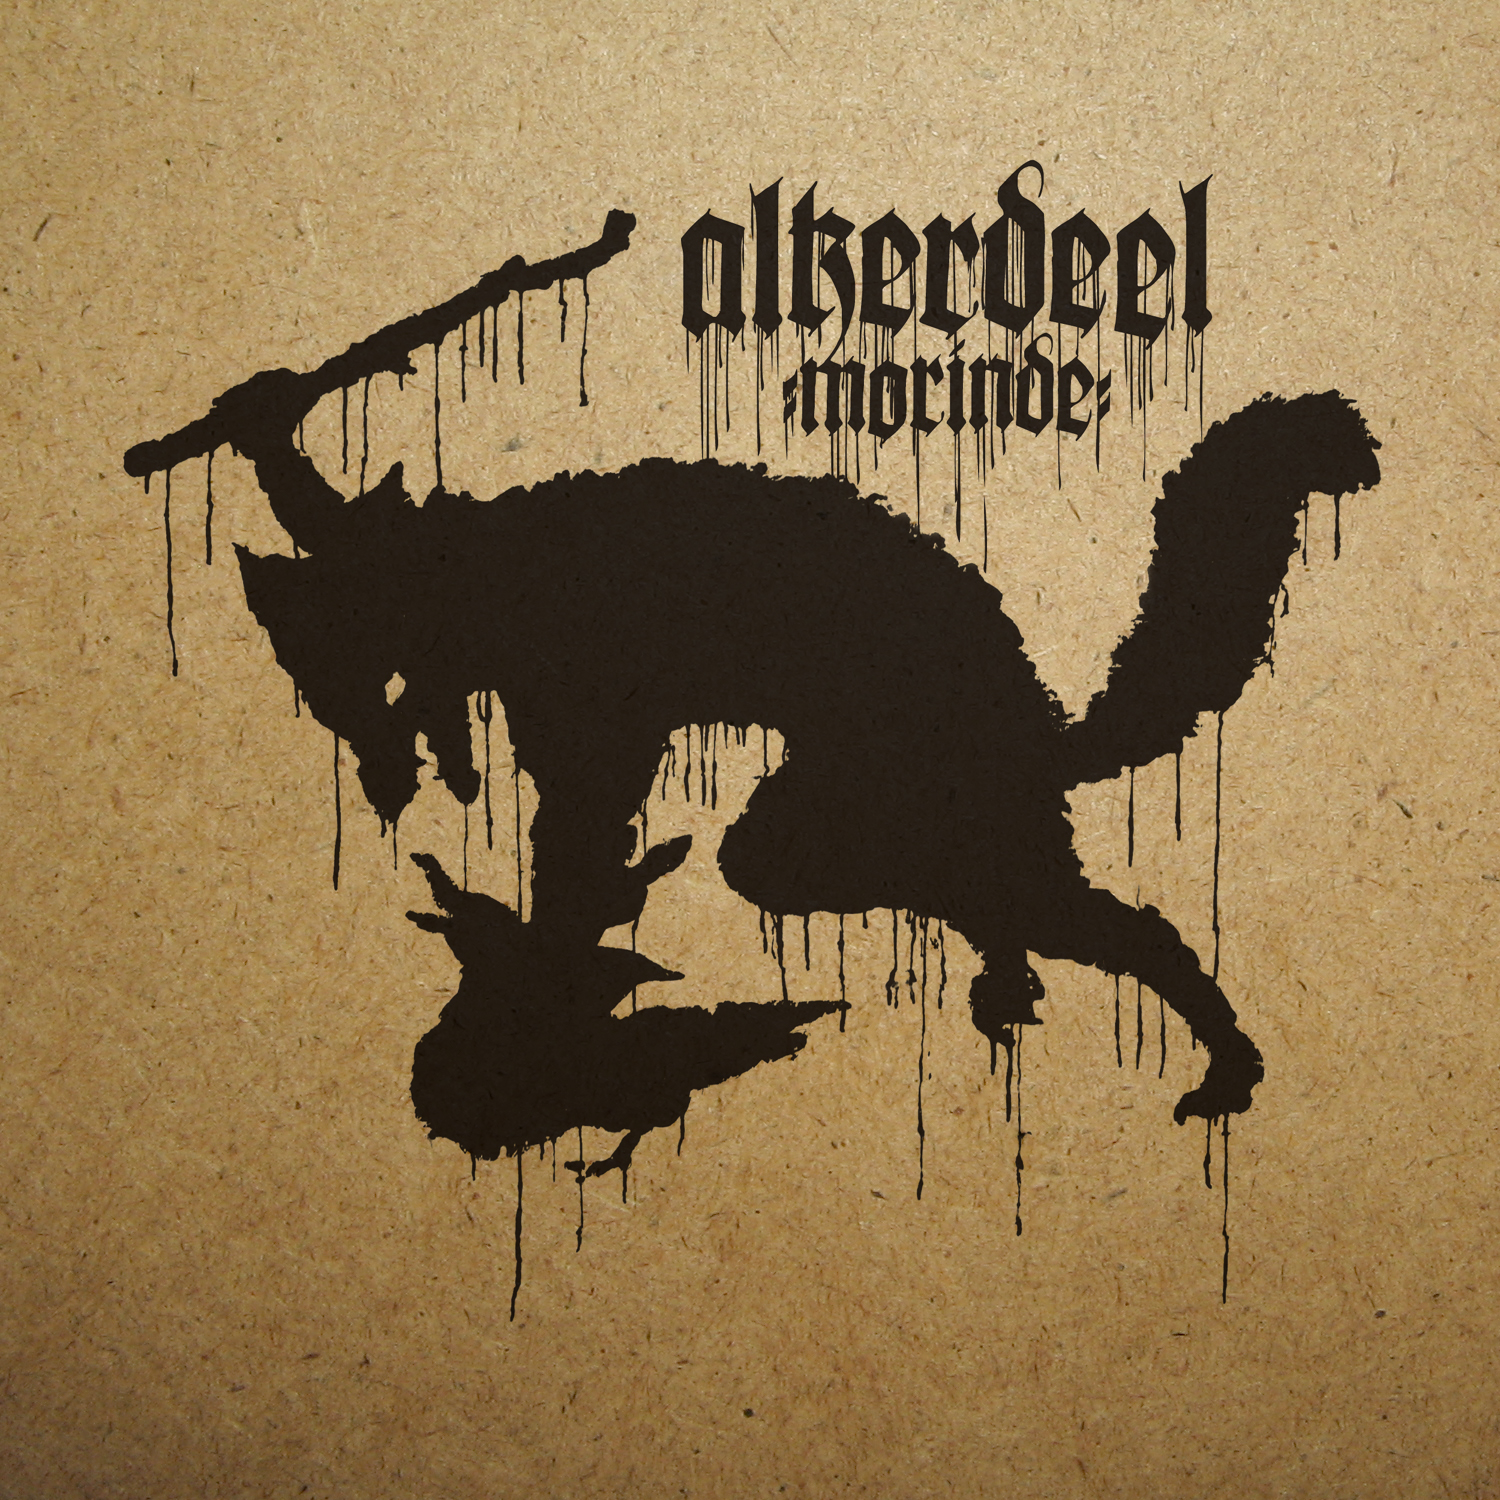 http://www.alkerdeel.be/userfiles/pics/morinde_cover_color_1.jpg